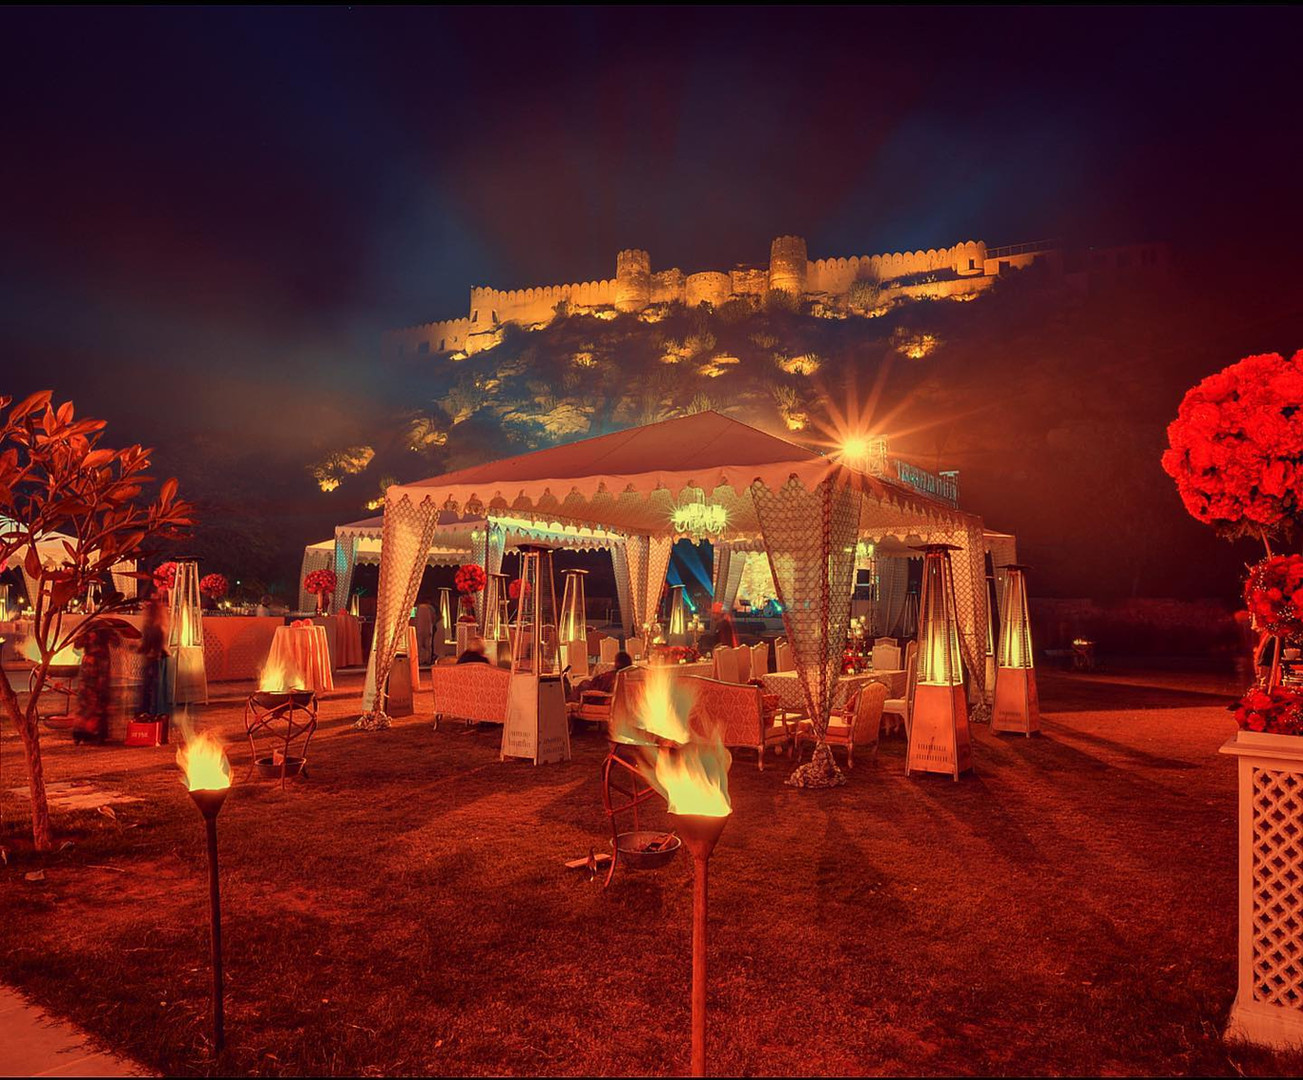 The War Fort makes a majestic backdrop for festivites in Bagh -e- Inayat